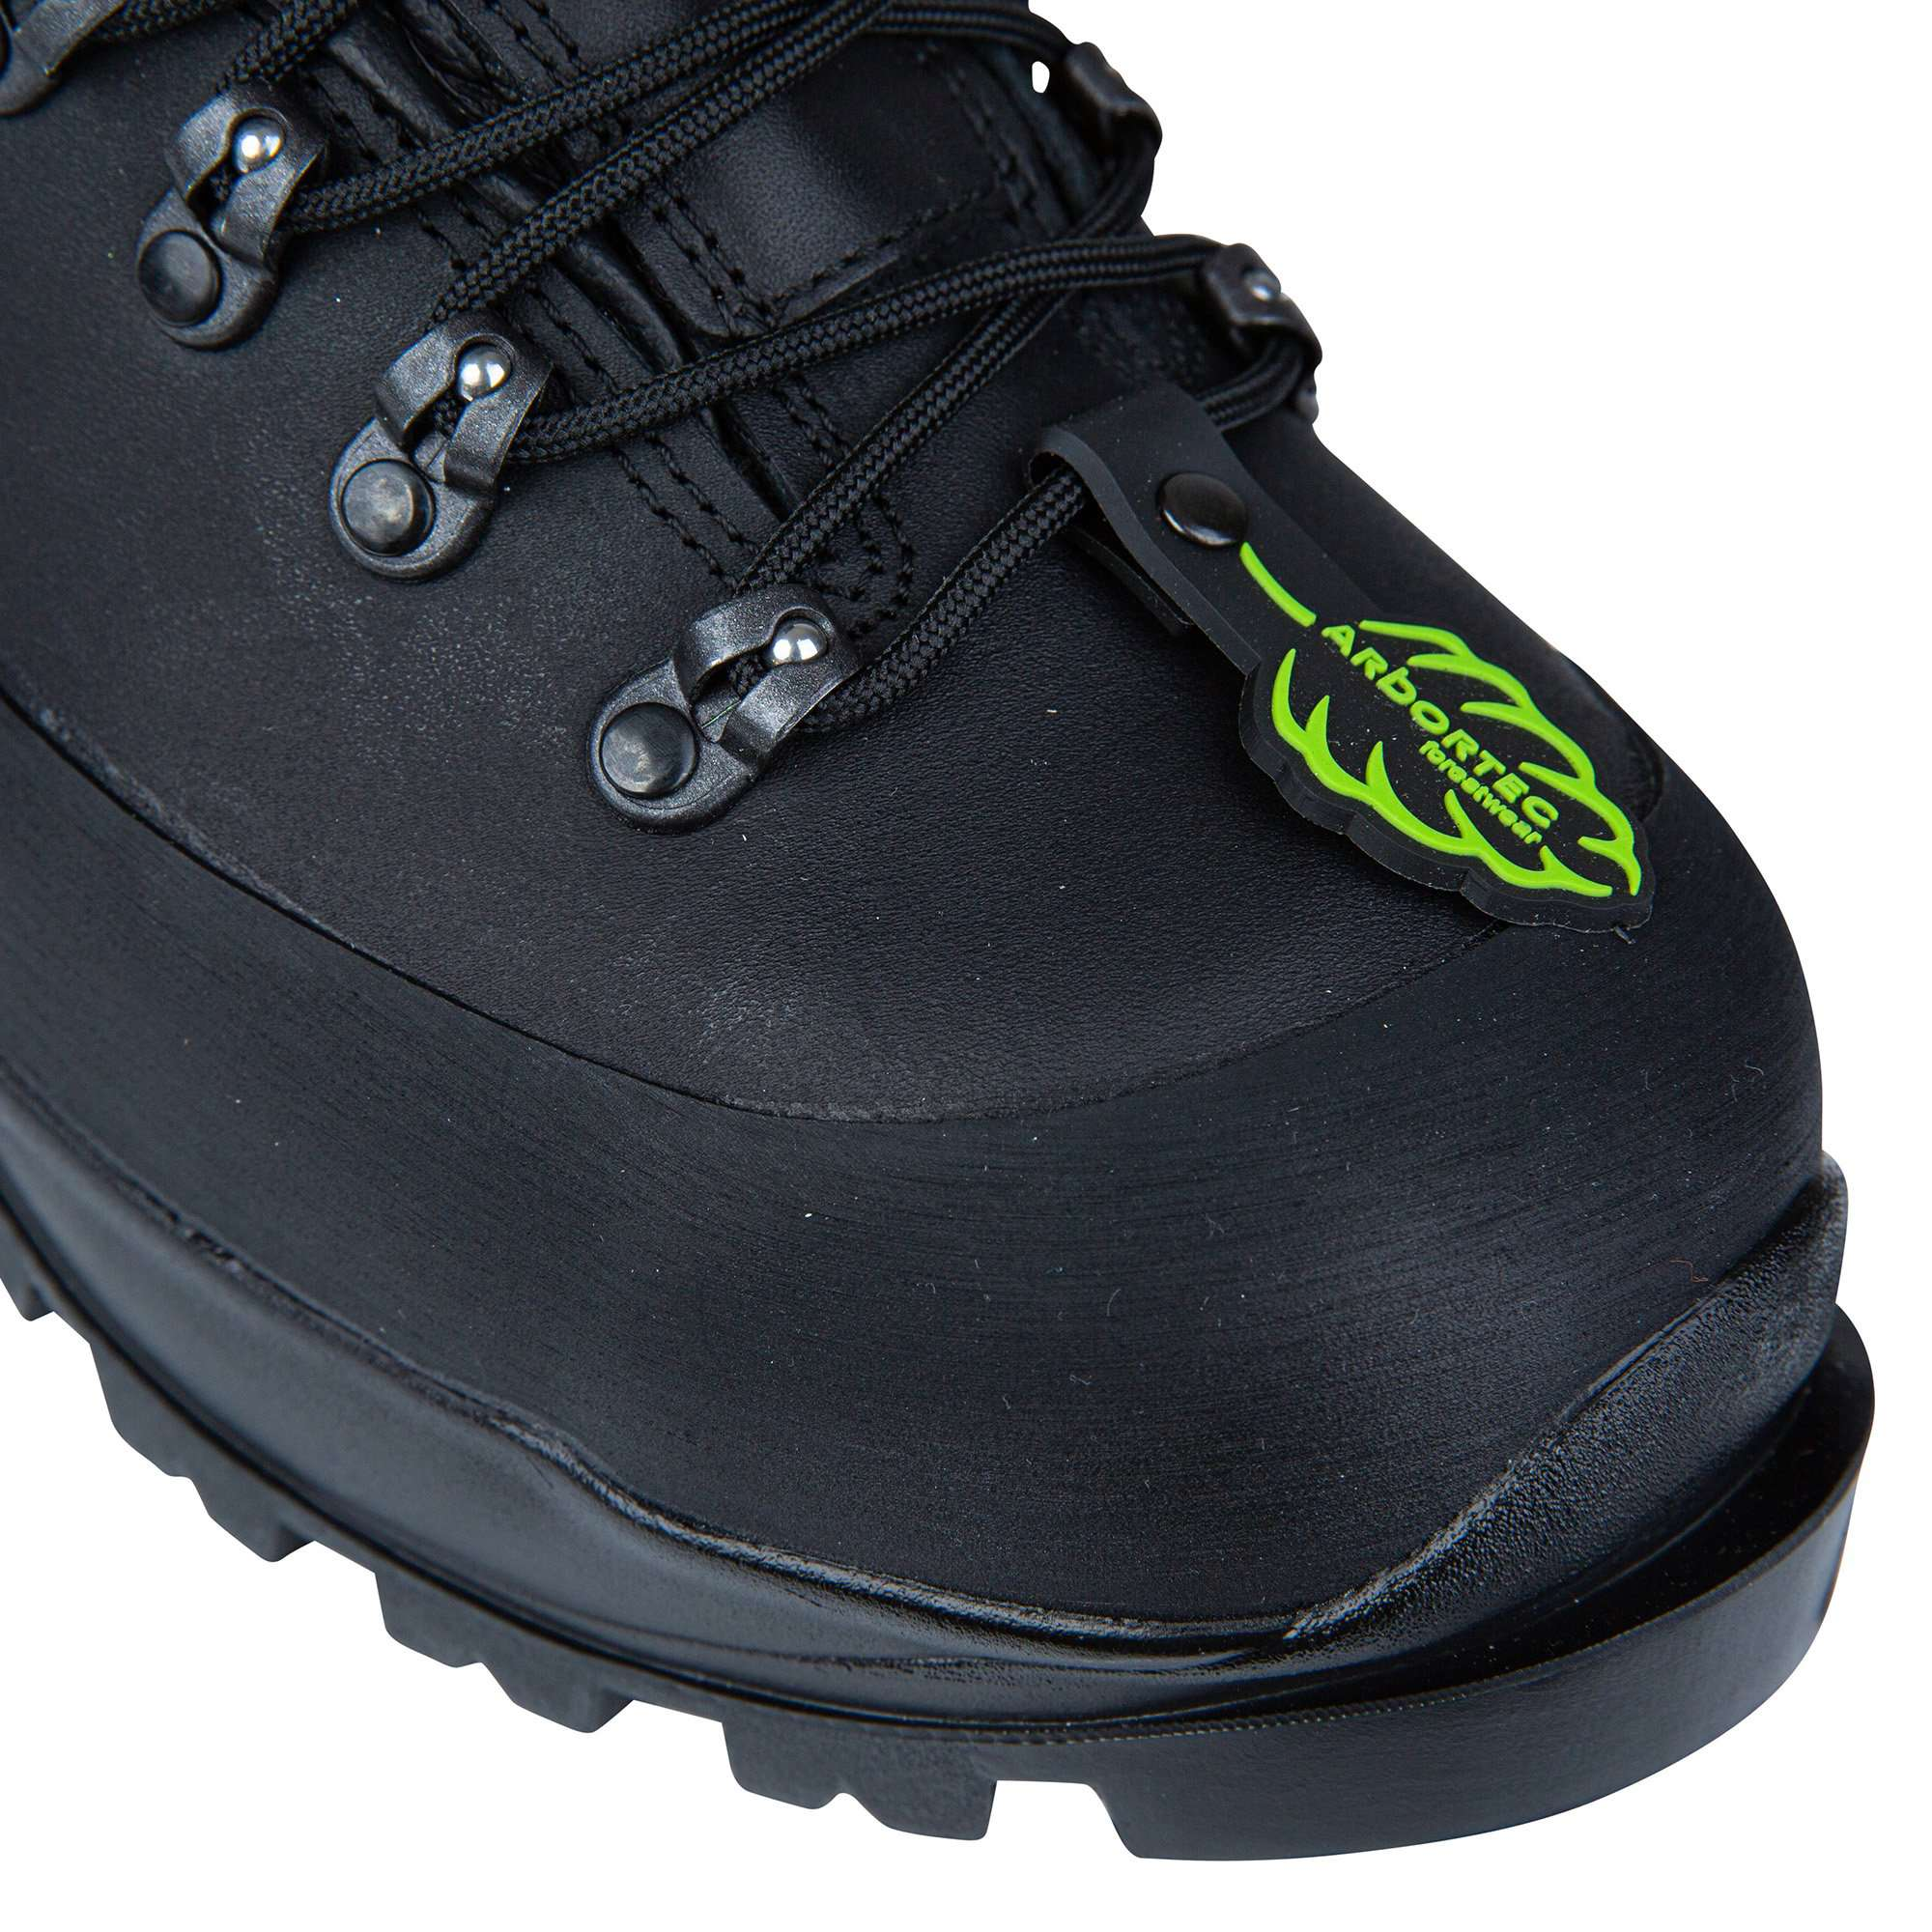 Profell Expert Class 3 Chainsaw Boot - AT35500